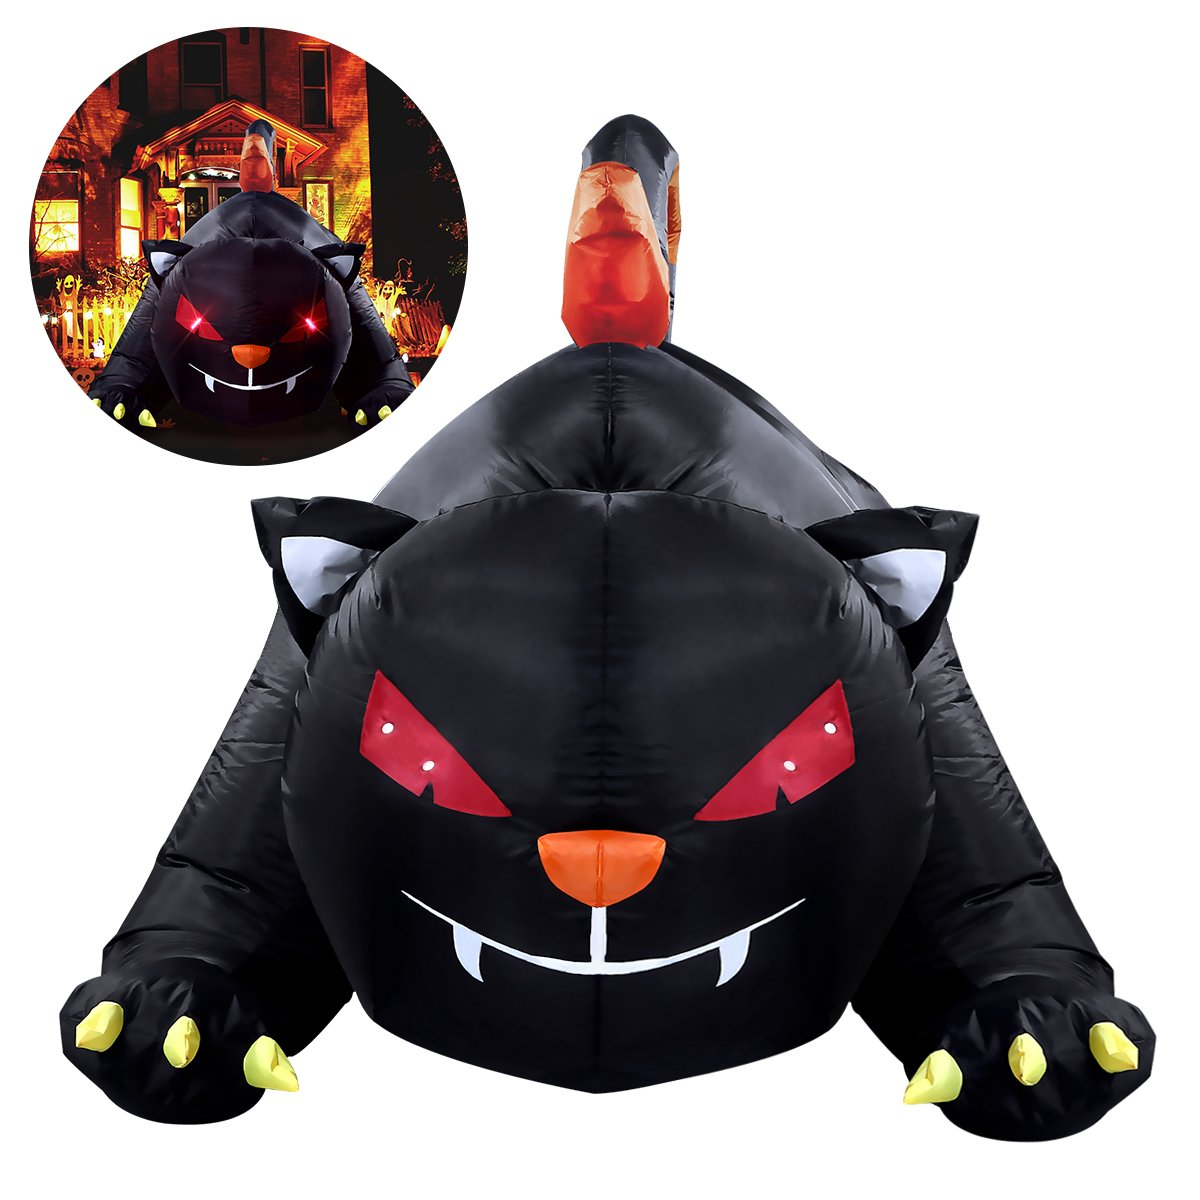 YUNLIGHTS 6X4 Foot Halloween Inflatable for Halloween Big Black Cat with LED lights Indoor and Outdoor Decorations